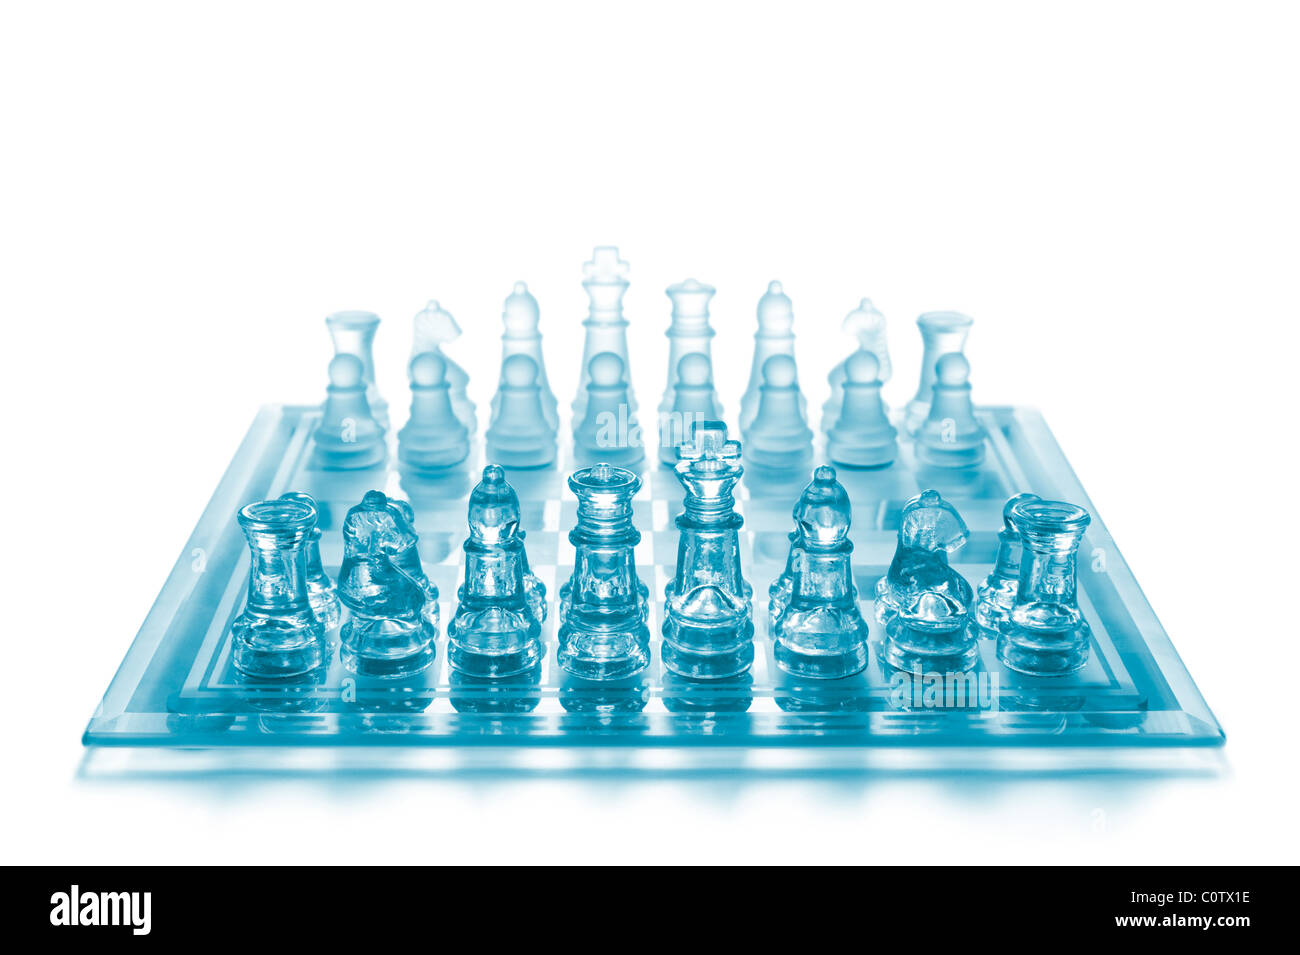 Glass chess on chess board - Stock Image